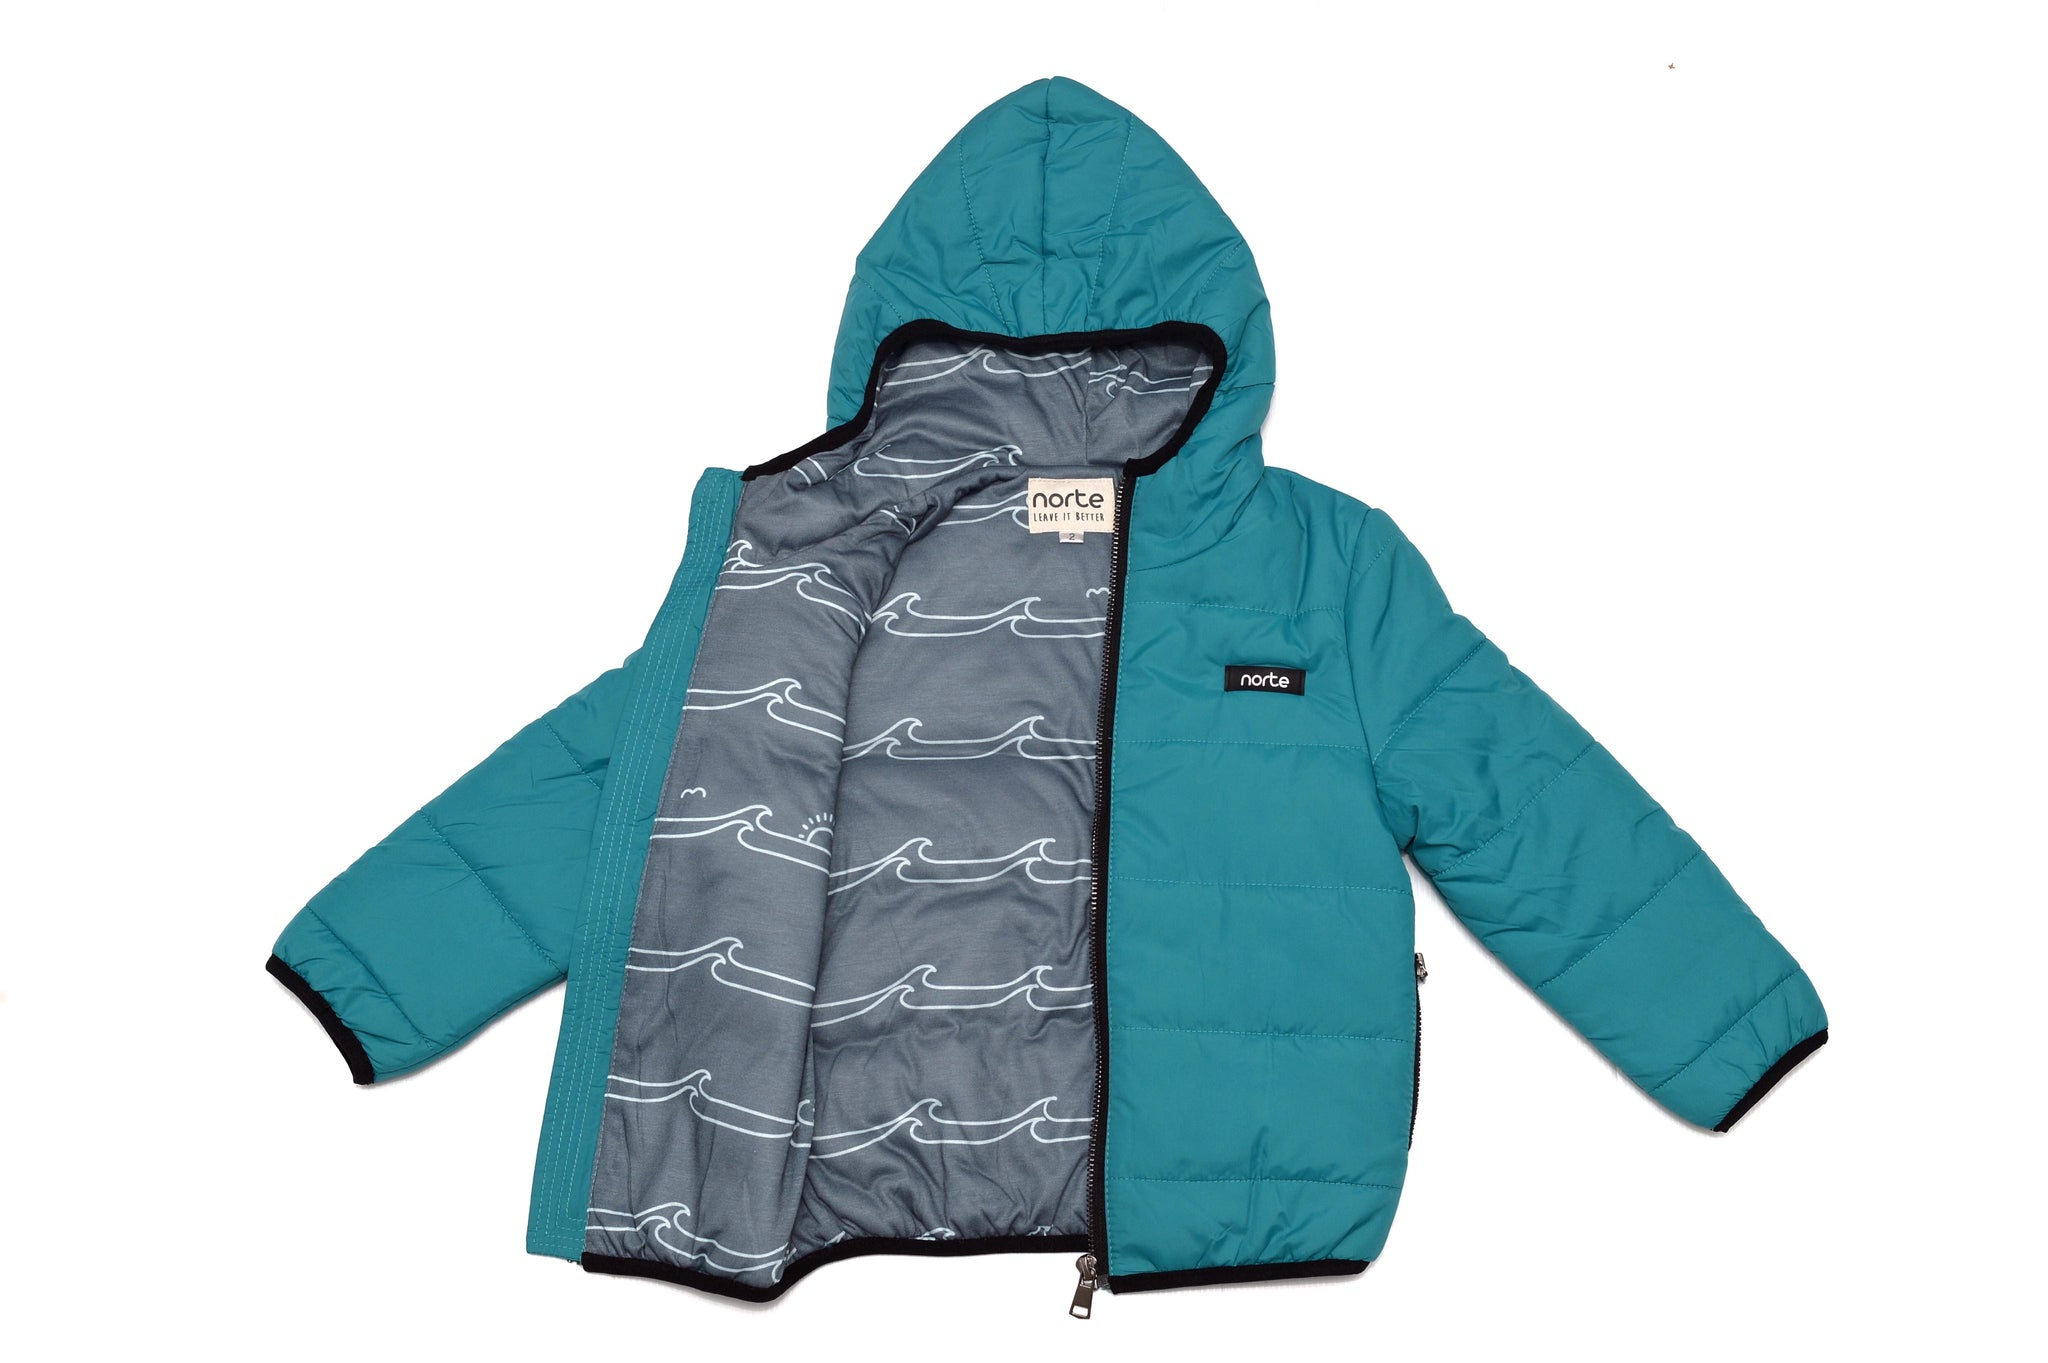 Elements Jacket - Norte, Jacket, Norte, Norte